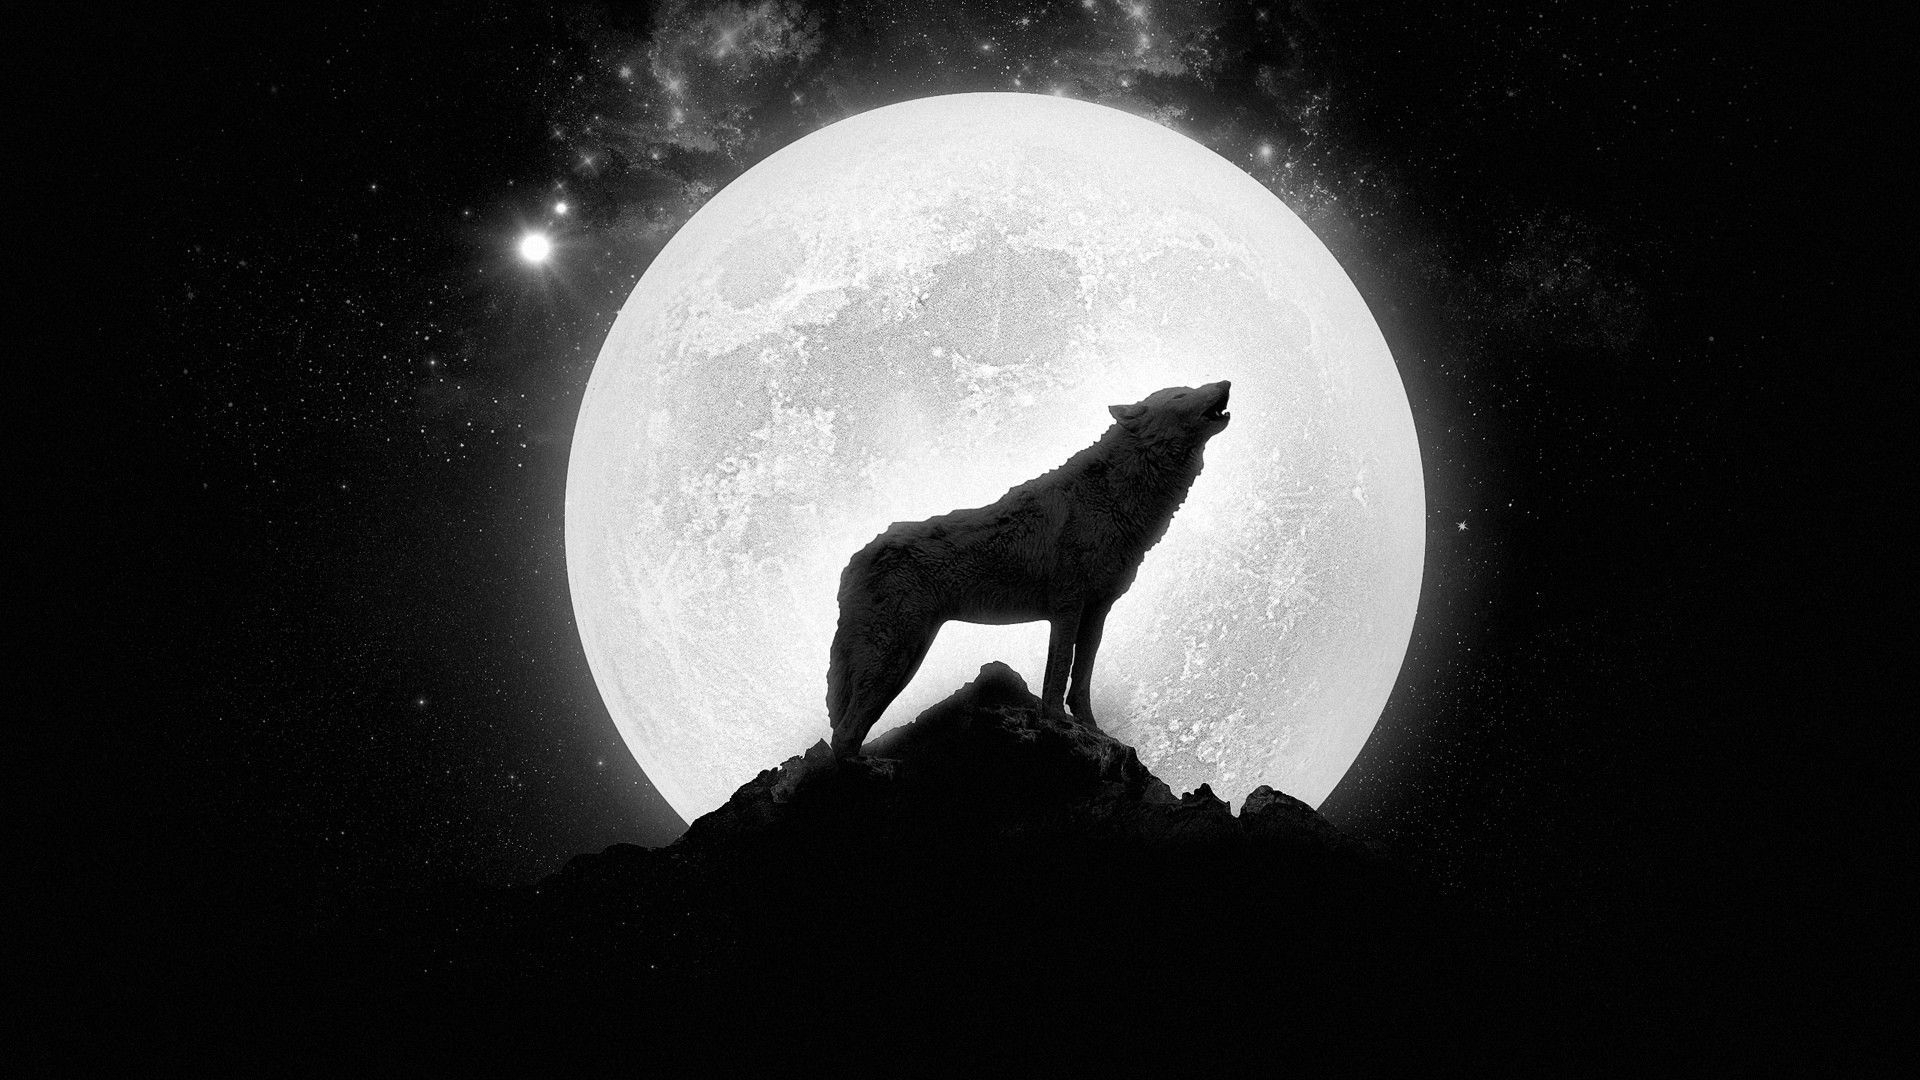 10 New Wolf Howling At The Moon Wallpaper Hd FULL HD 1080p For PC